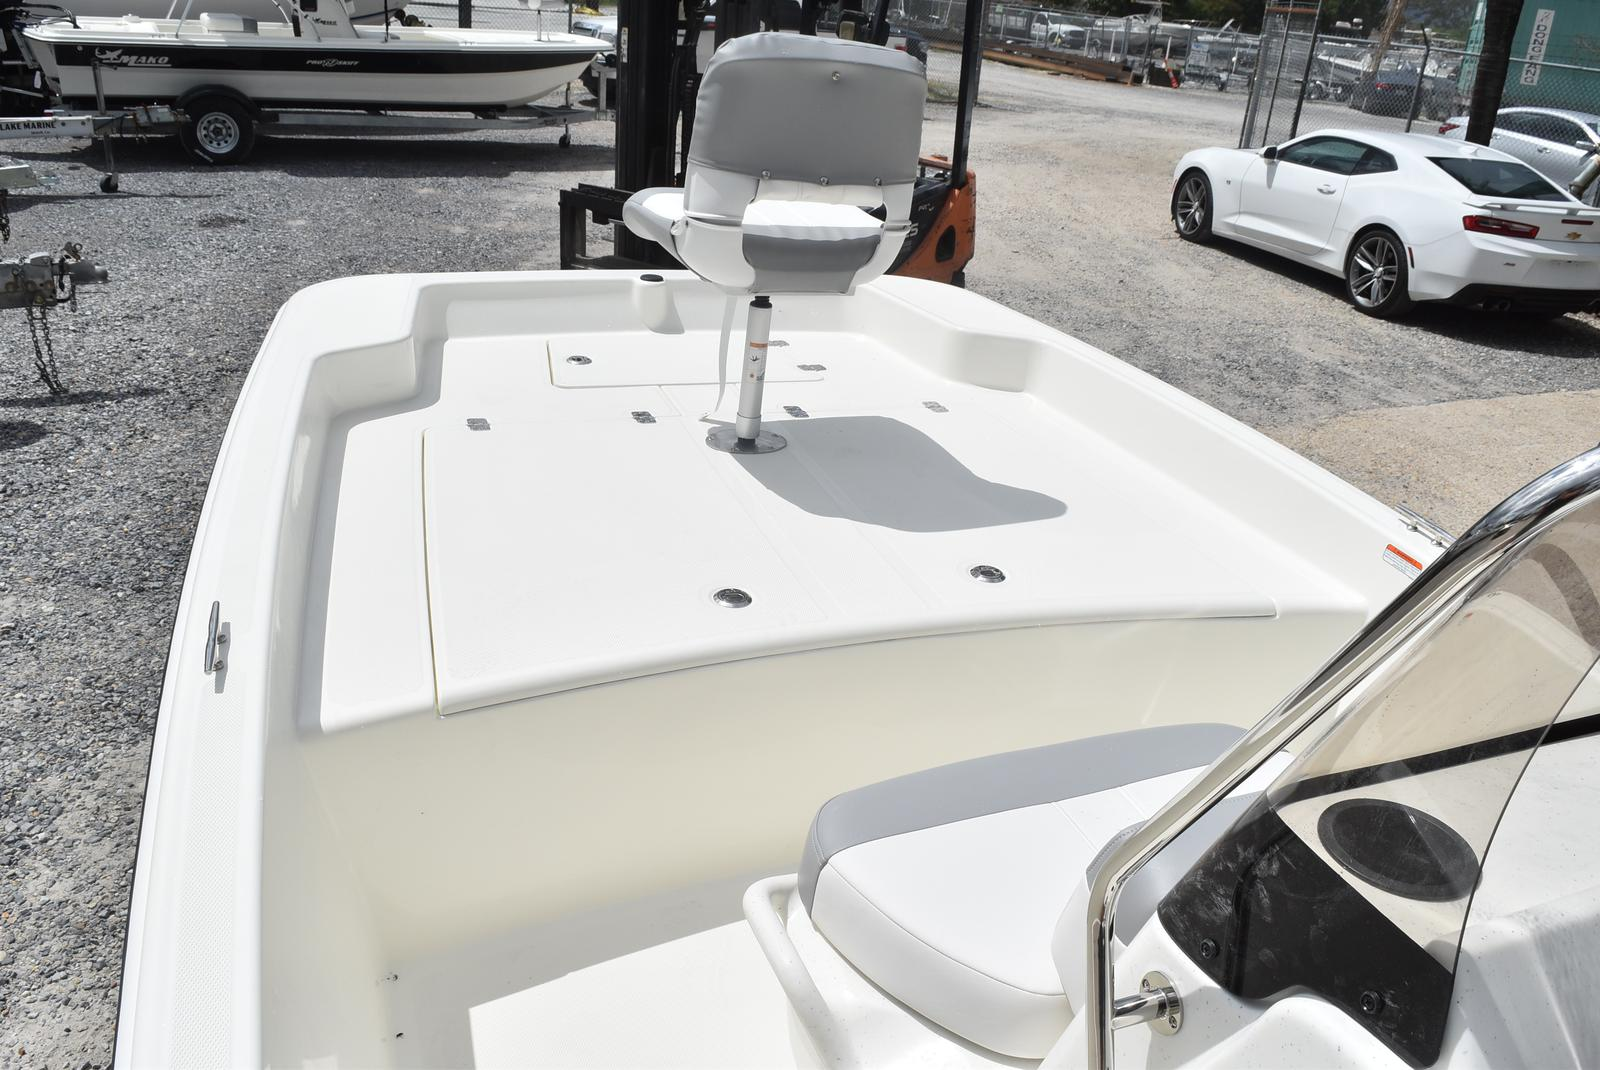 2020 Mako boat for sale, model of the boat is Pro Skiff 17, 75 ELPT & Image # 455 of 702